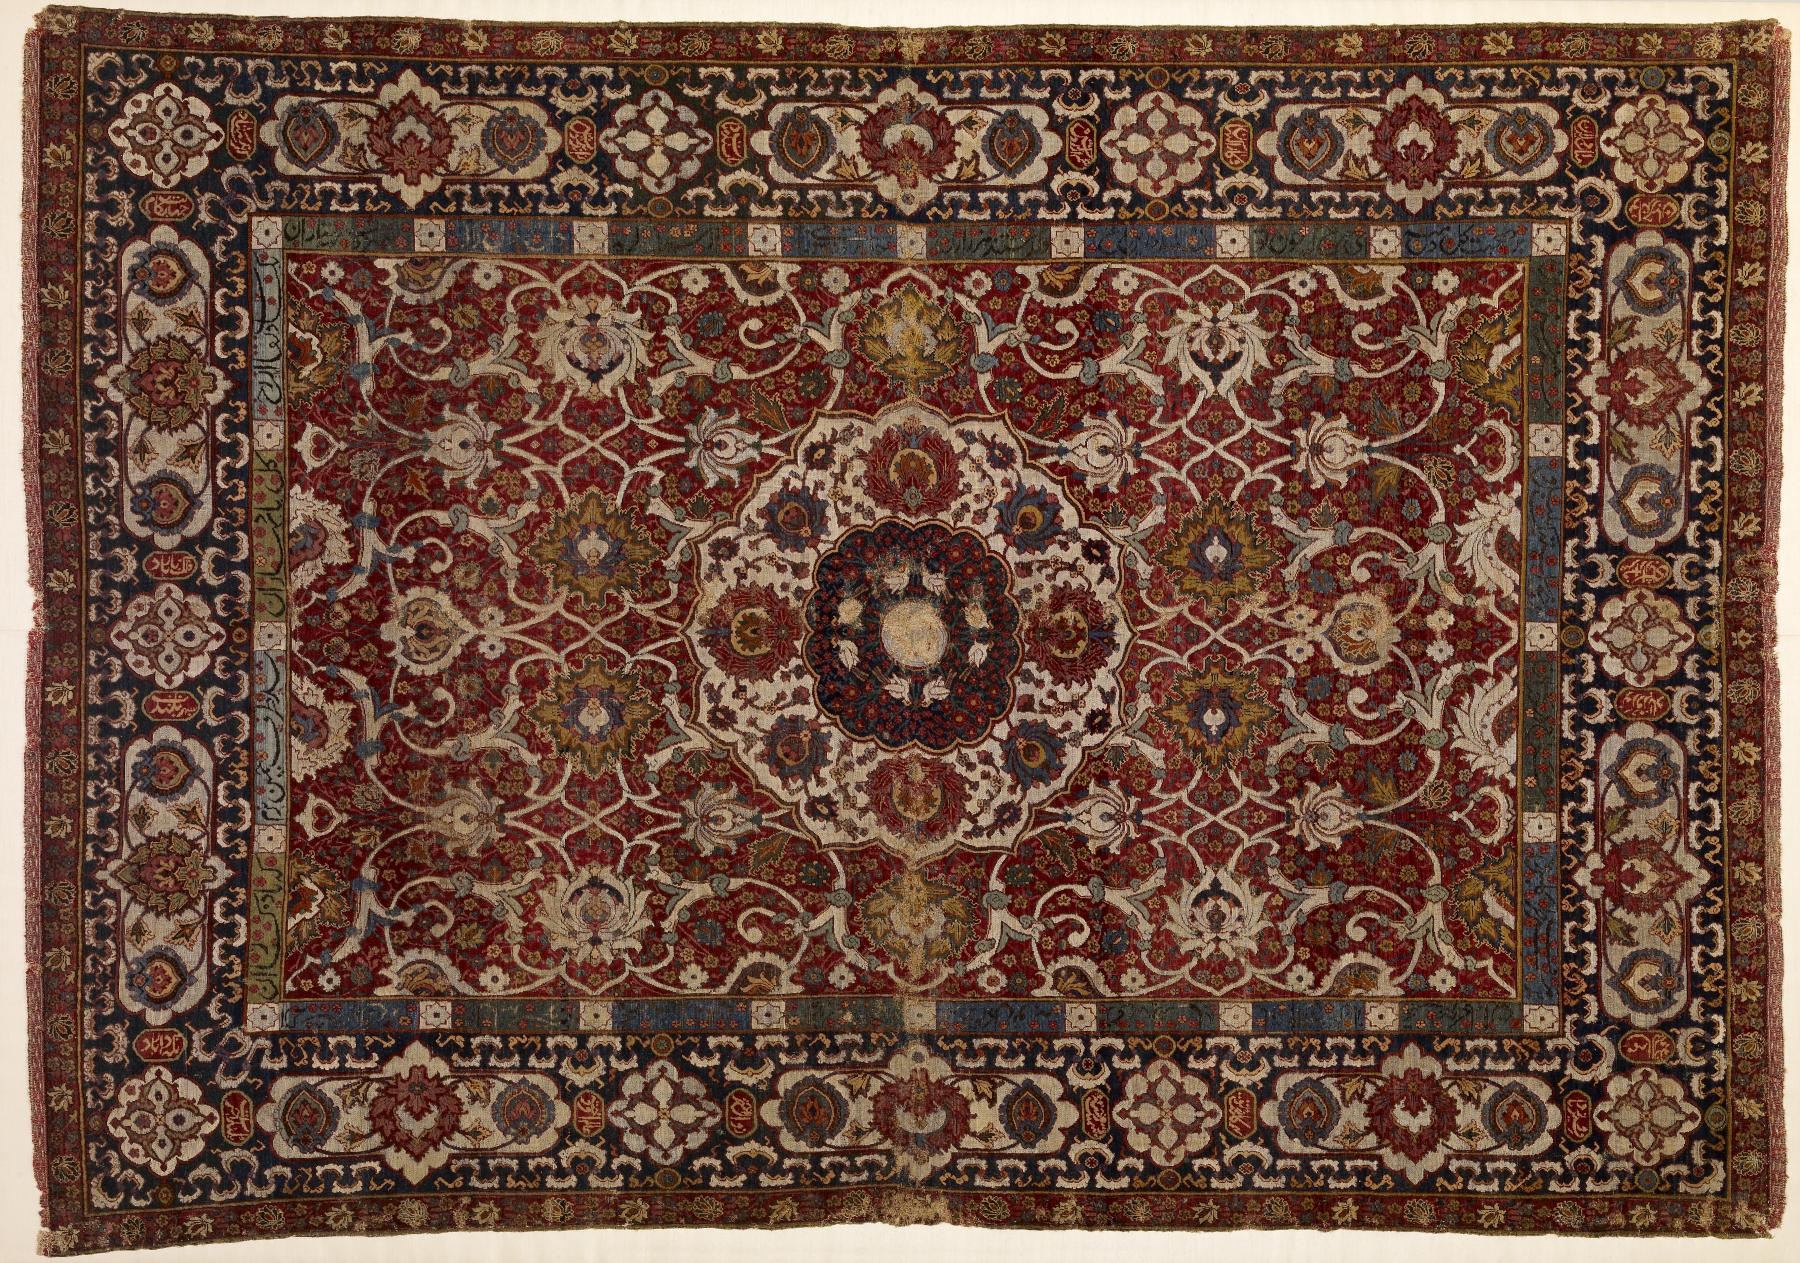 Best Carpet For A Sitting Room